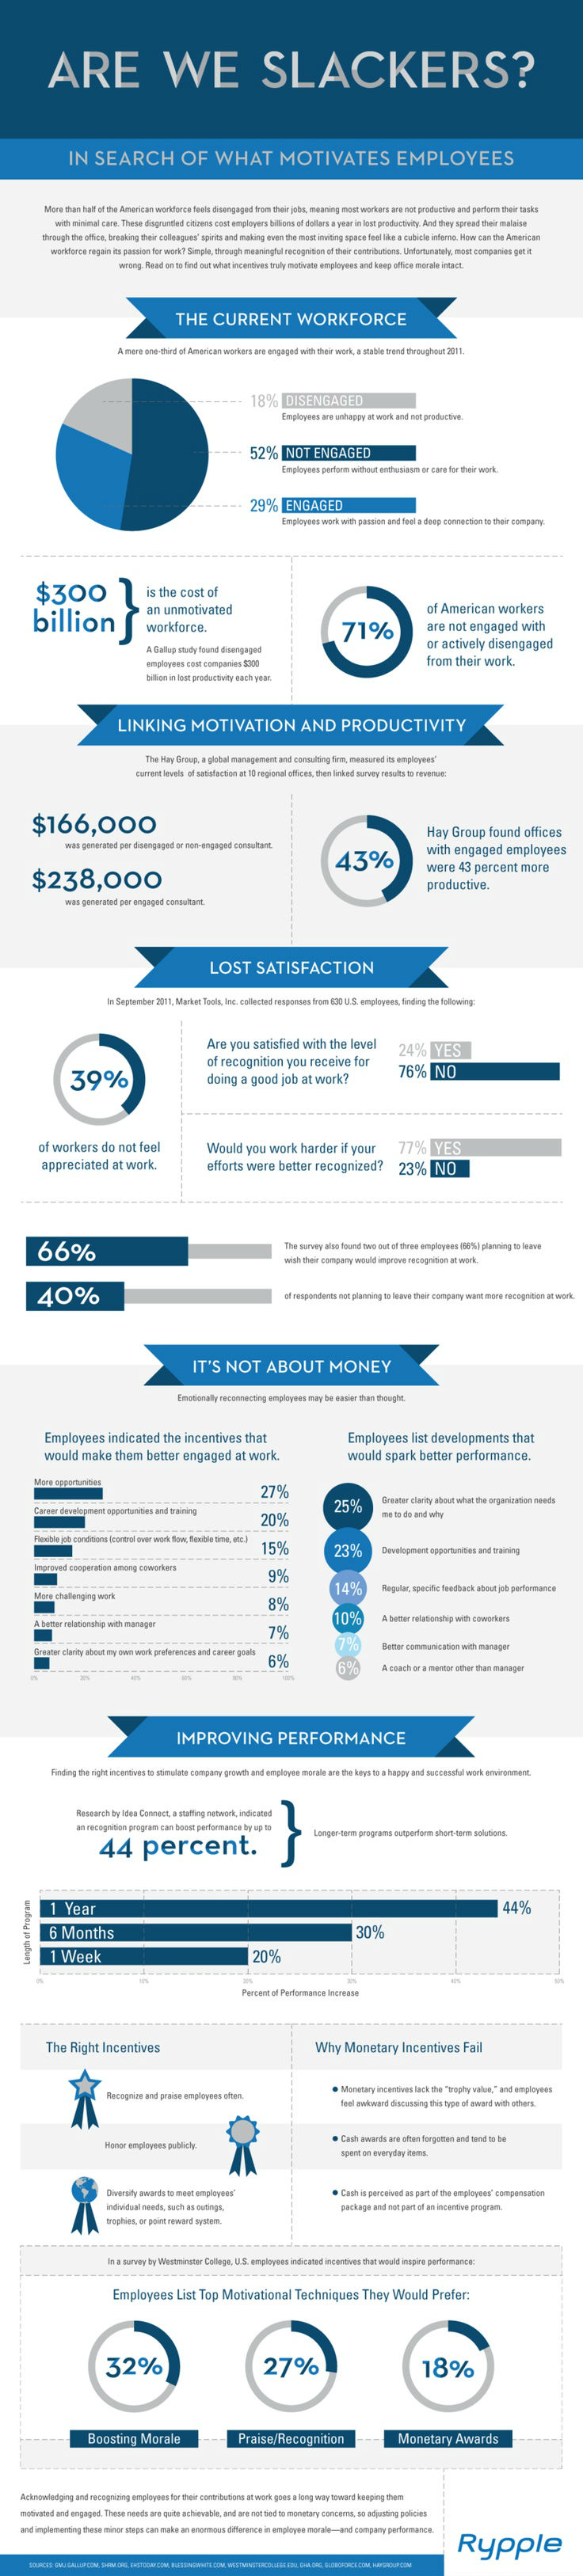 In Search Of What Motivates Employees [Infographic]